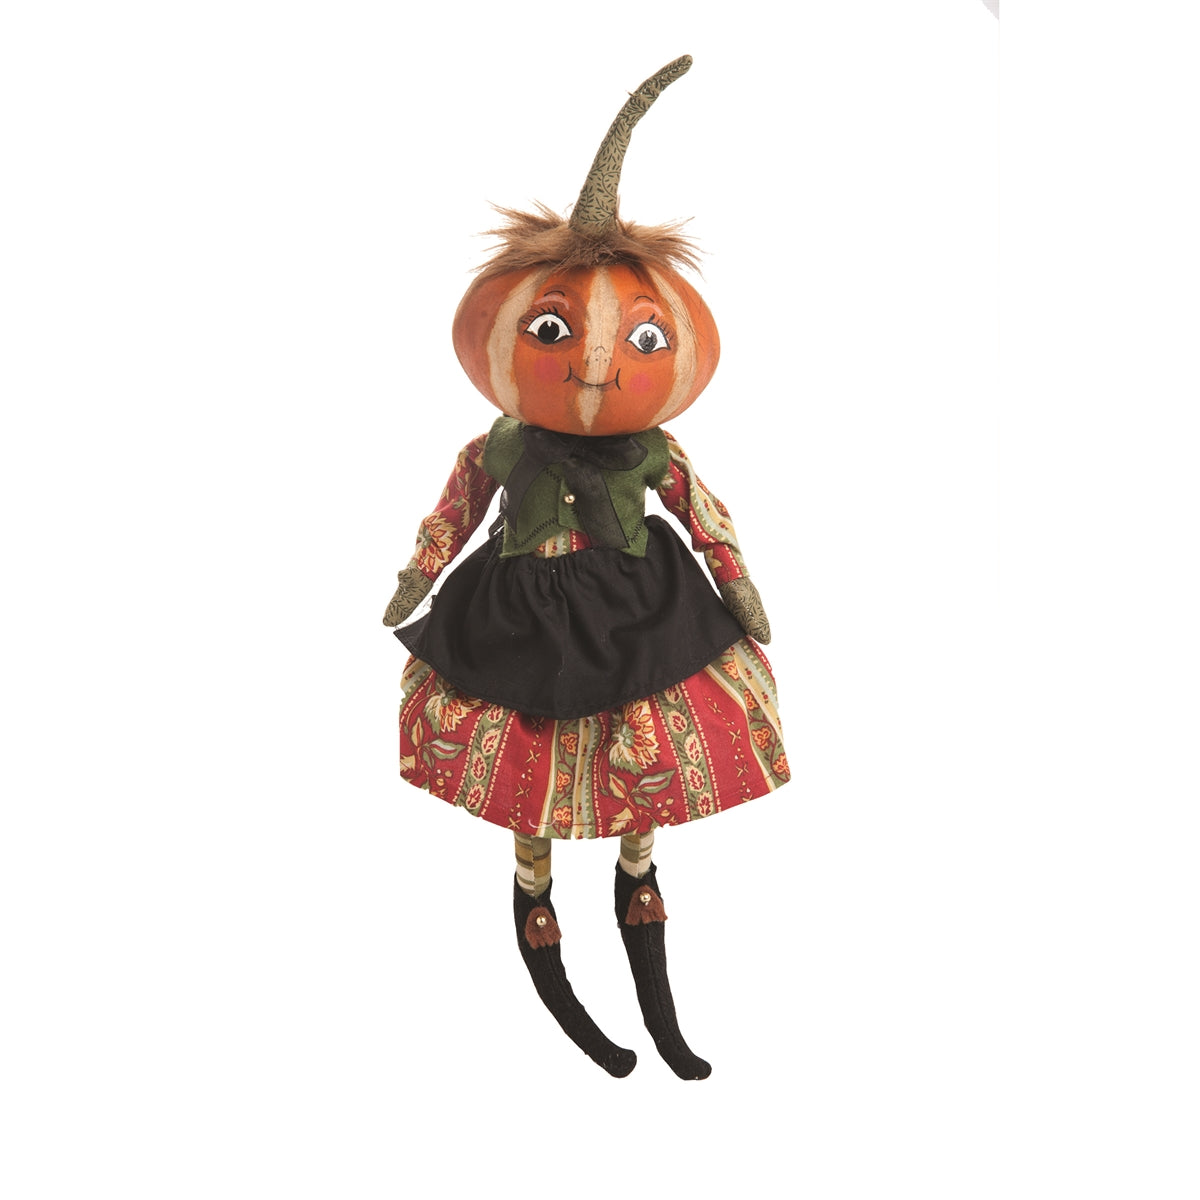 Joe Spencer Kimberly Pumpkin Head Doll